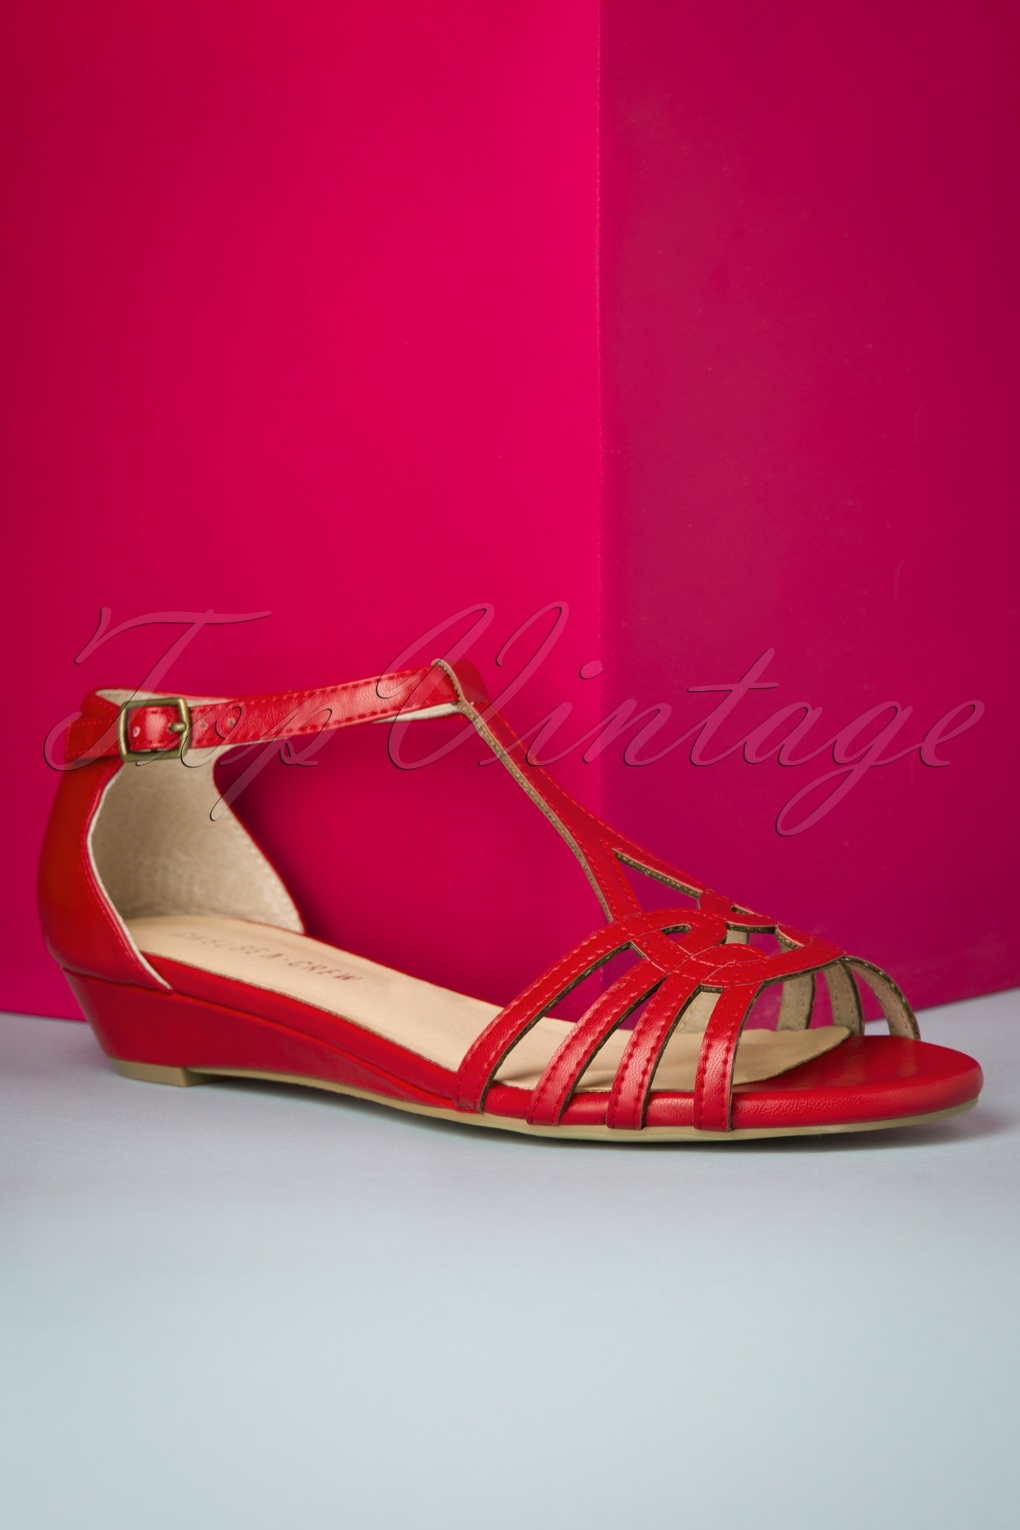 1950s Style Shoes | Heels, Flats, Boots 50s Sedona Peeptoe Sandals in Red £24.95 AT vintagedancer.com